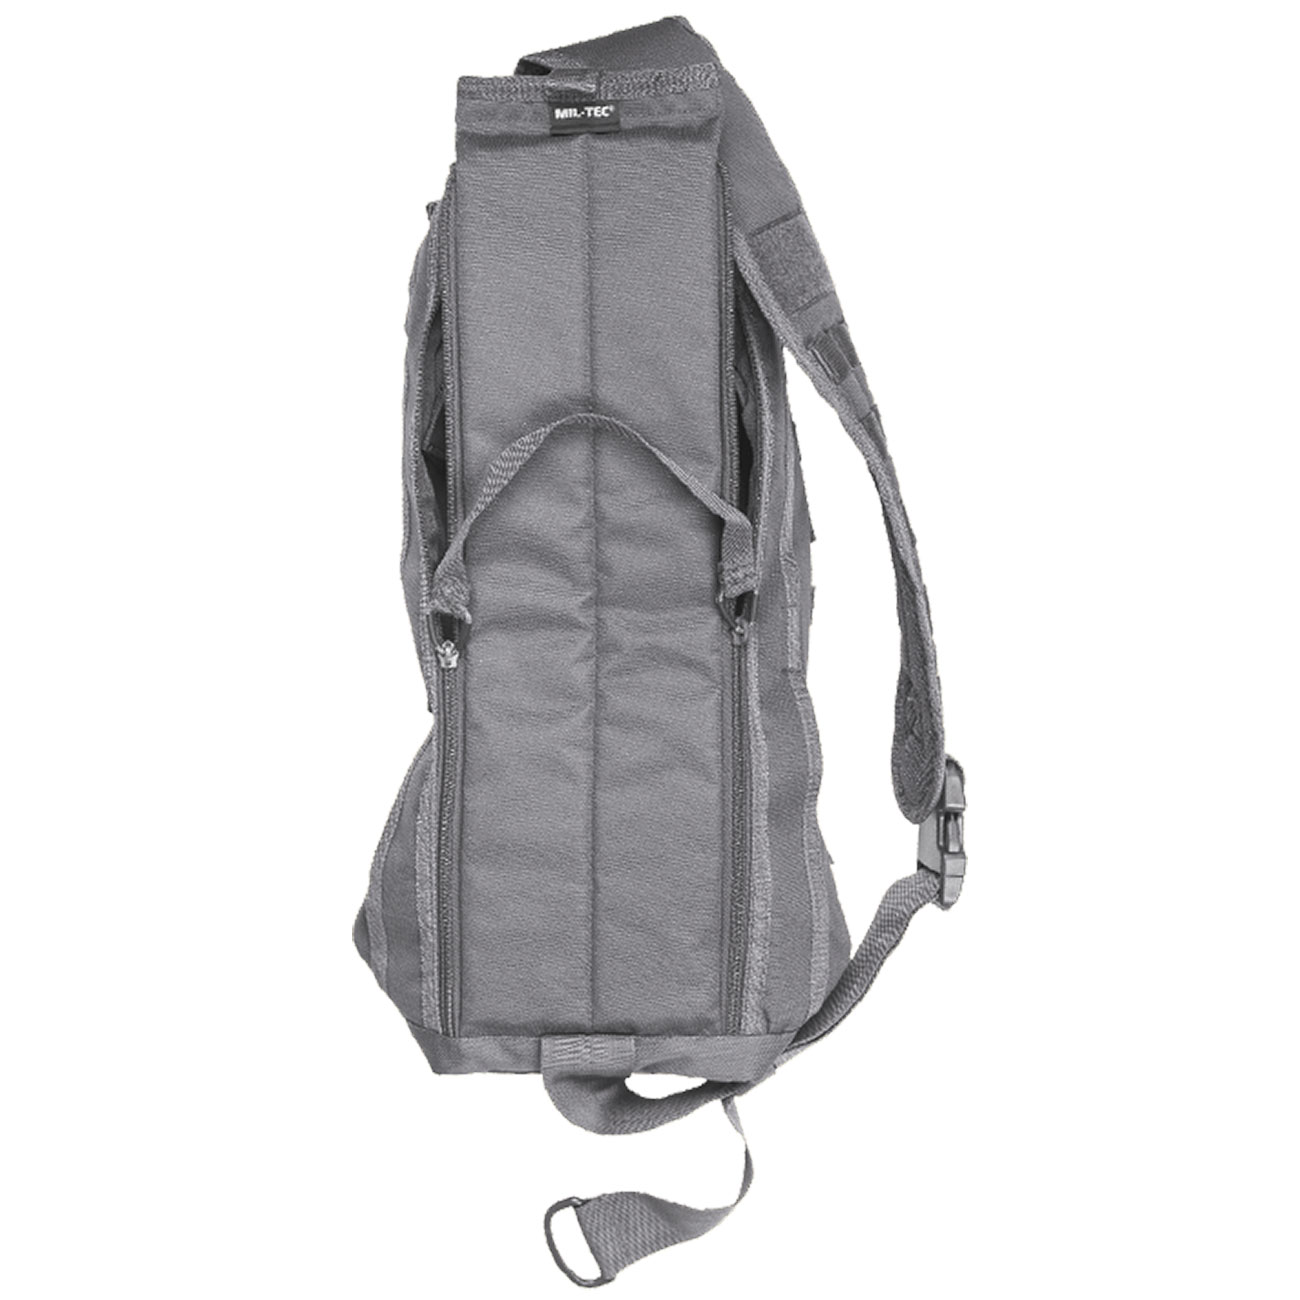 Mil-Tec Sling Bag Tanker urban grey 2